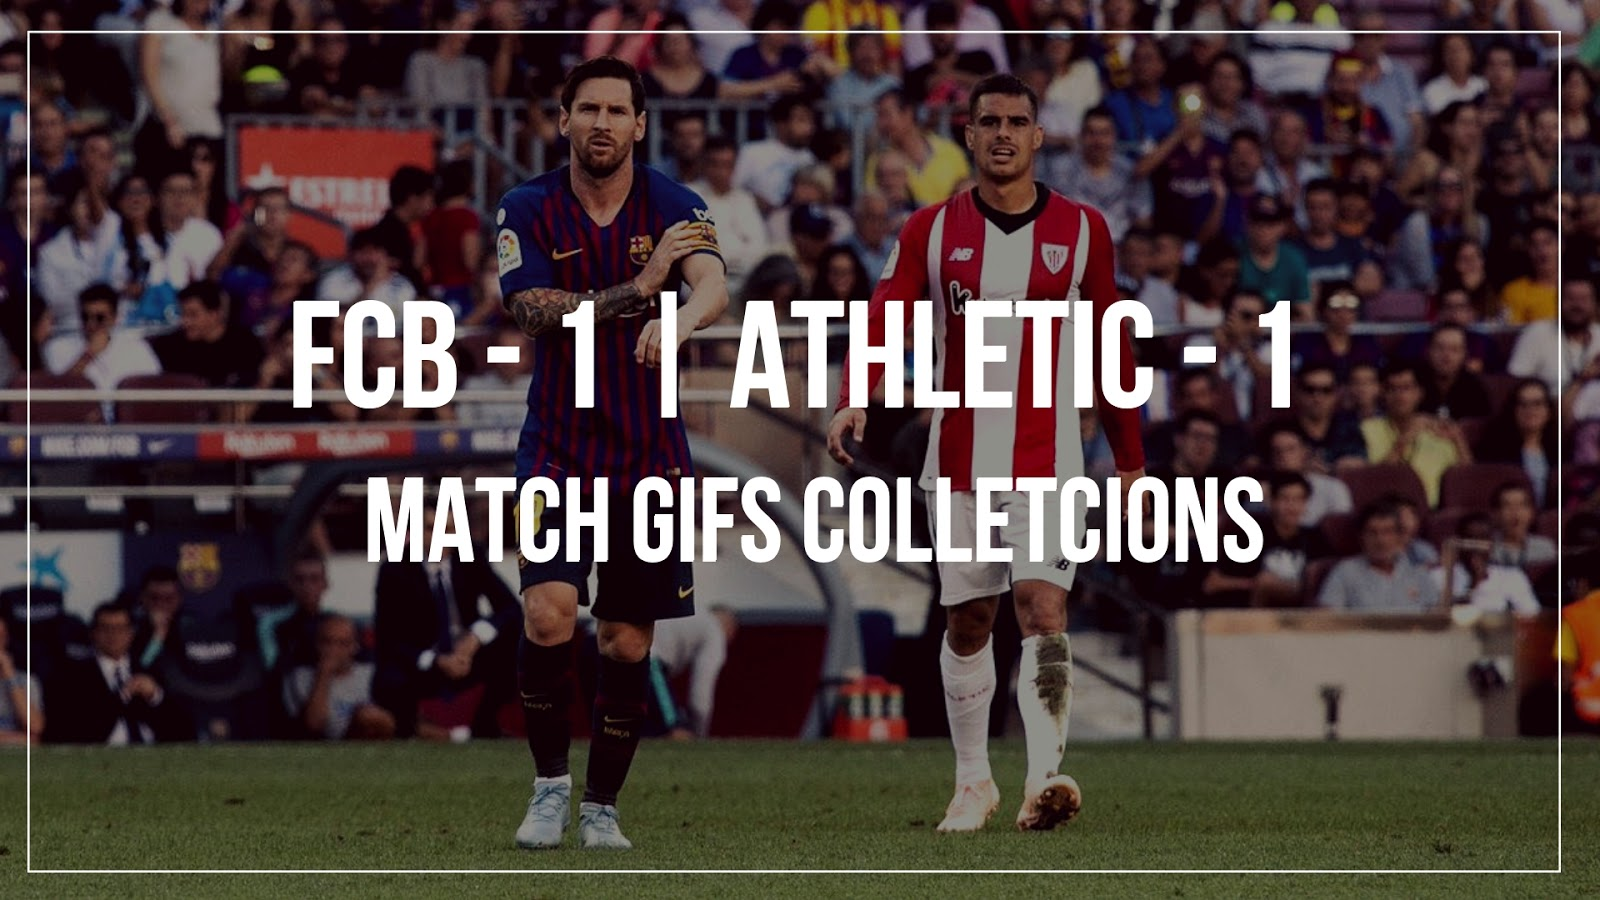 FC Barcelona vs Athletic Bilbao GIF Images